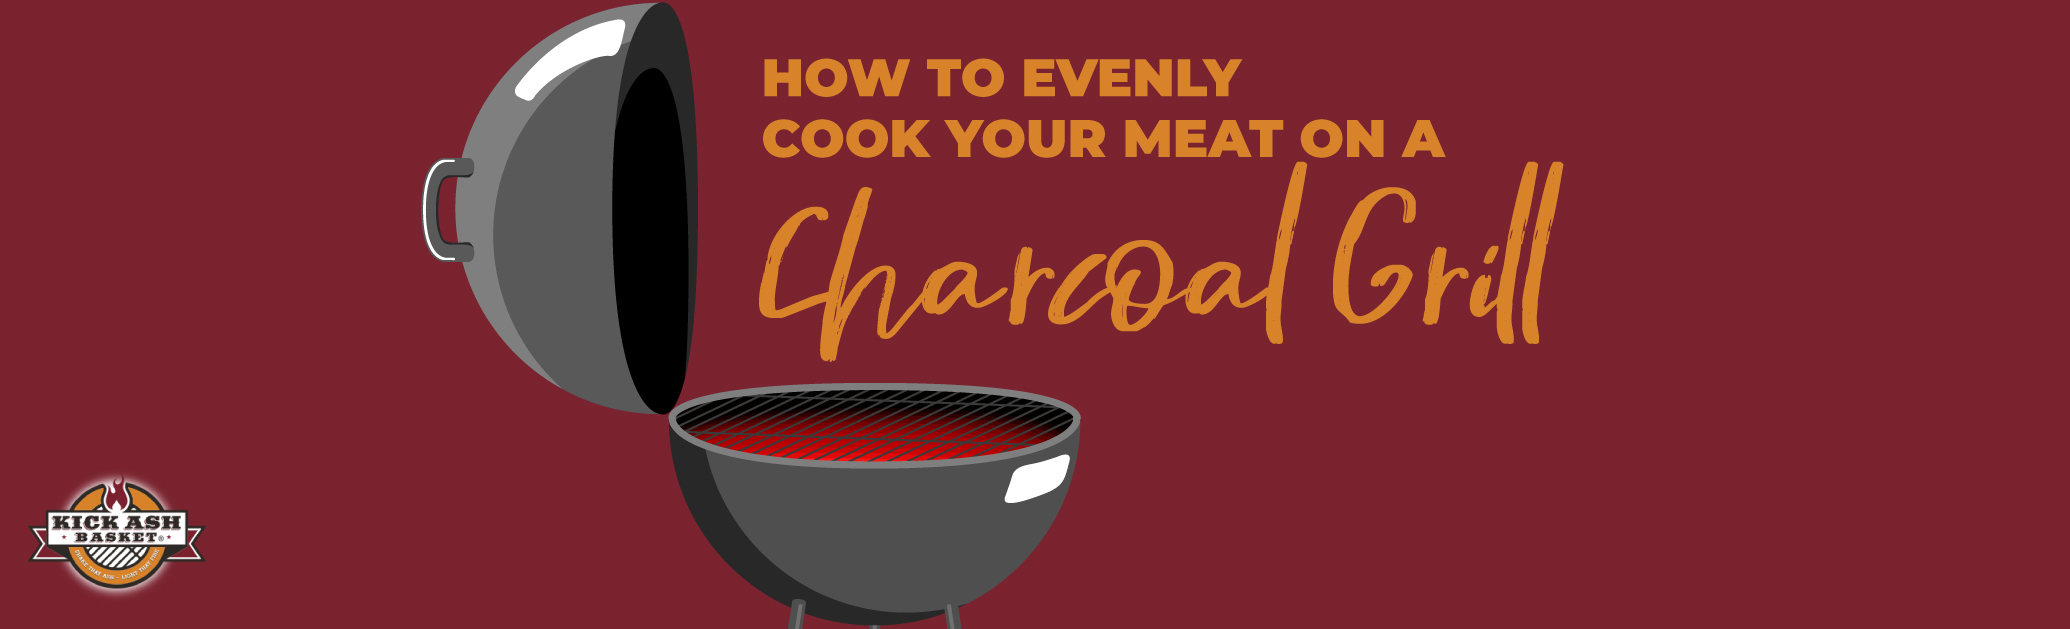 How to Evenly Cook Your Meat on a Charcoal Grill